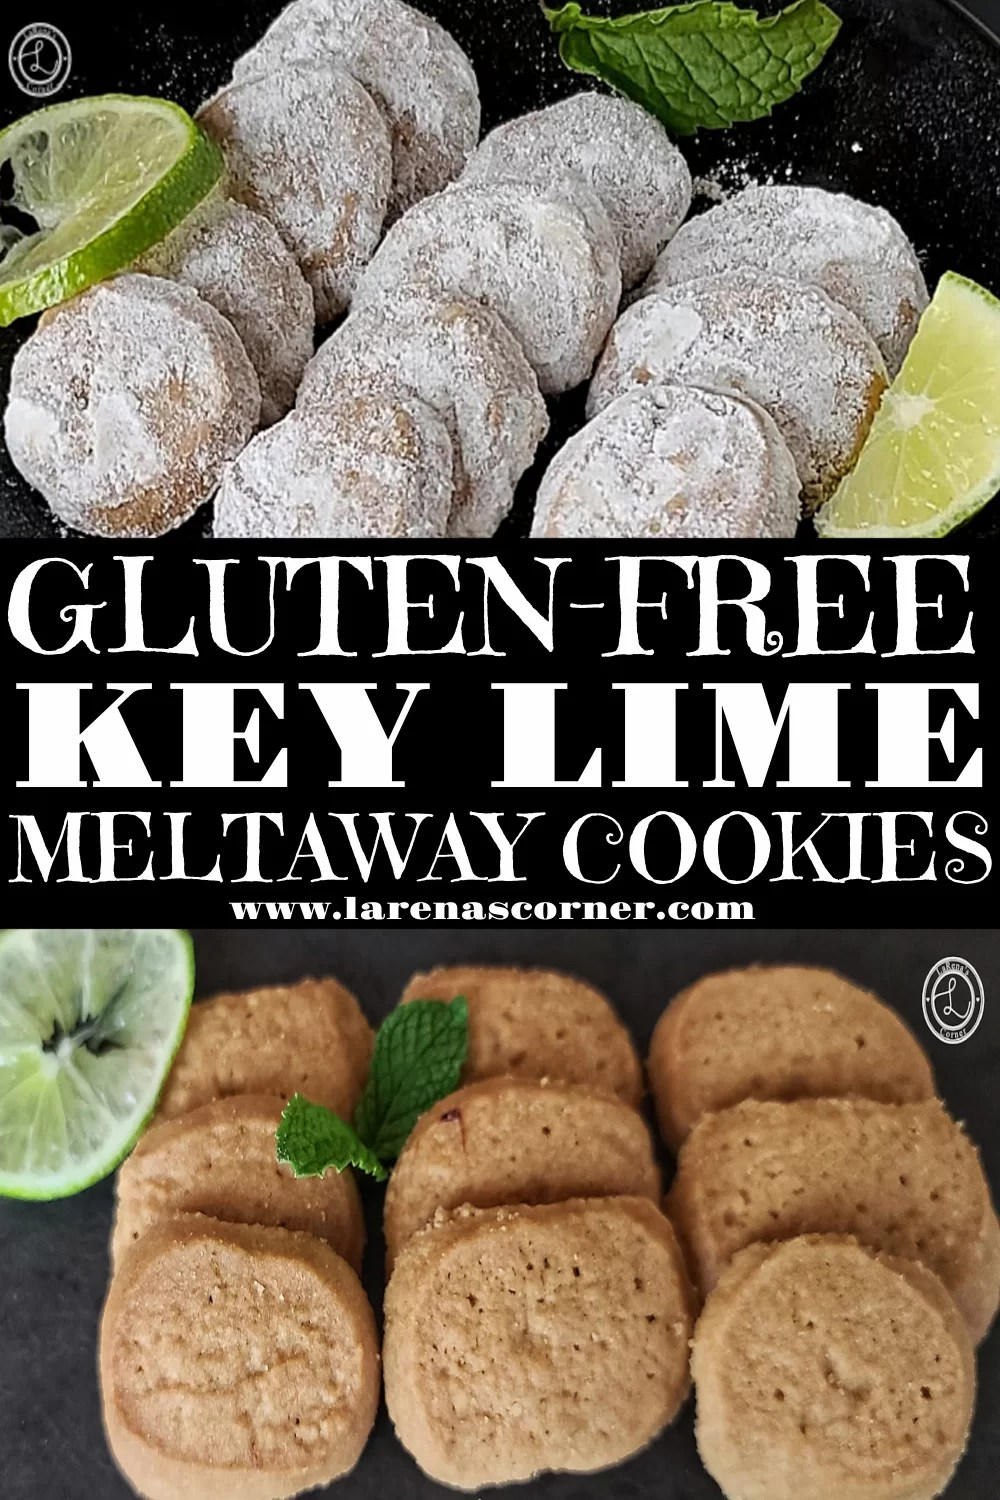 2 pictures of Gluten-Free Key Lime Meltaway Cookies. One dusted with powdered monkfruit sweetener and one without.